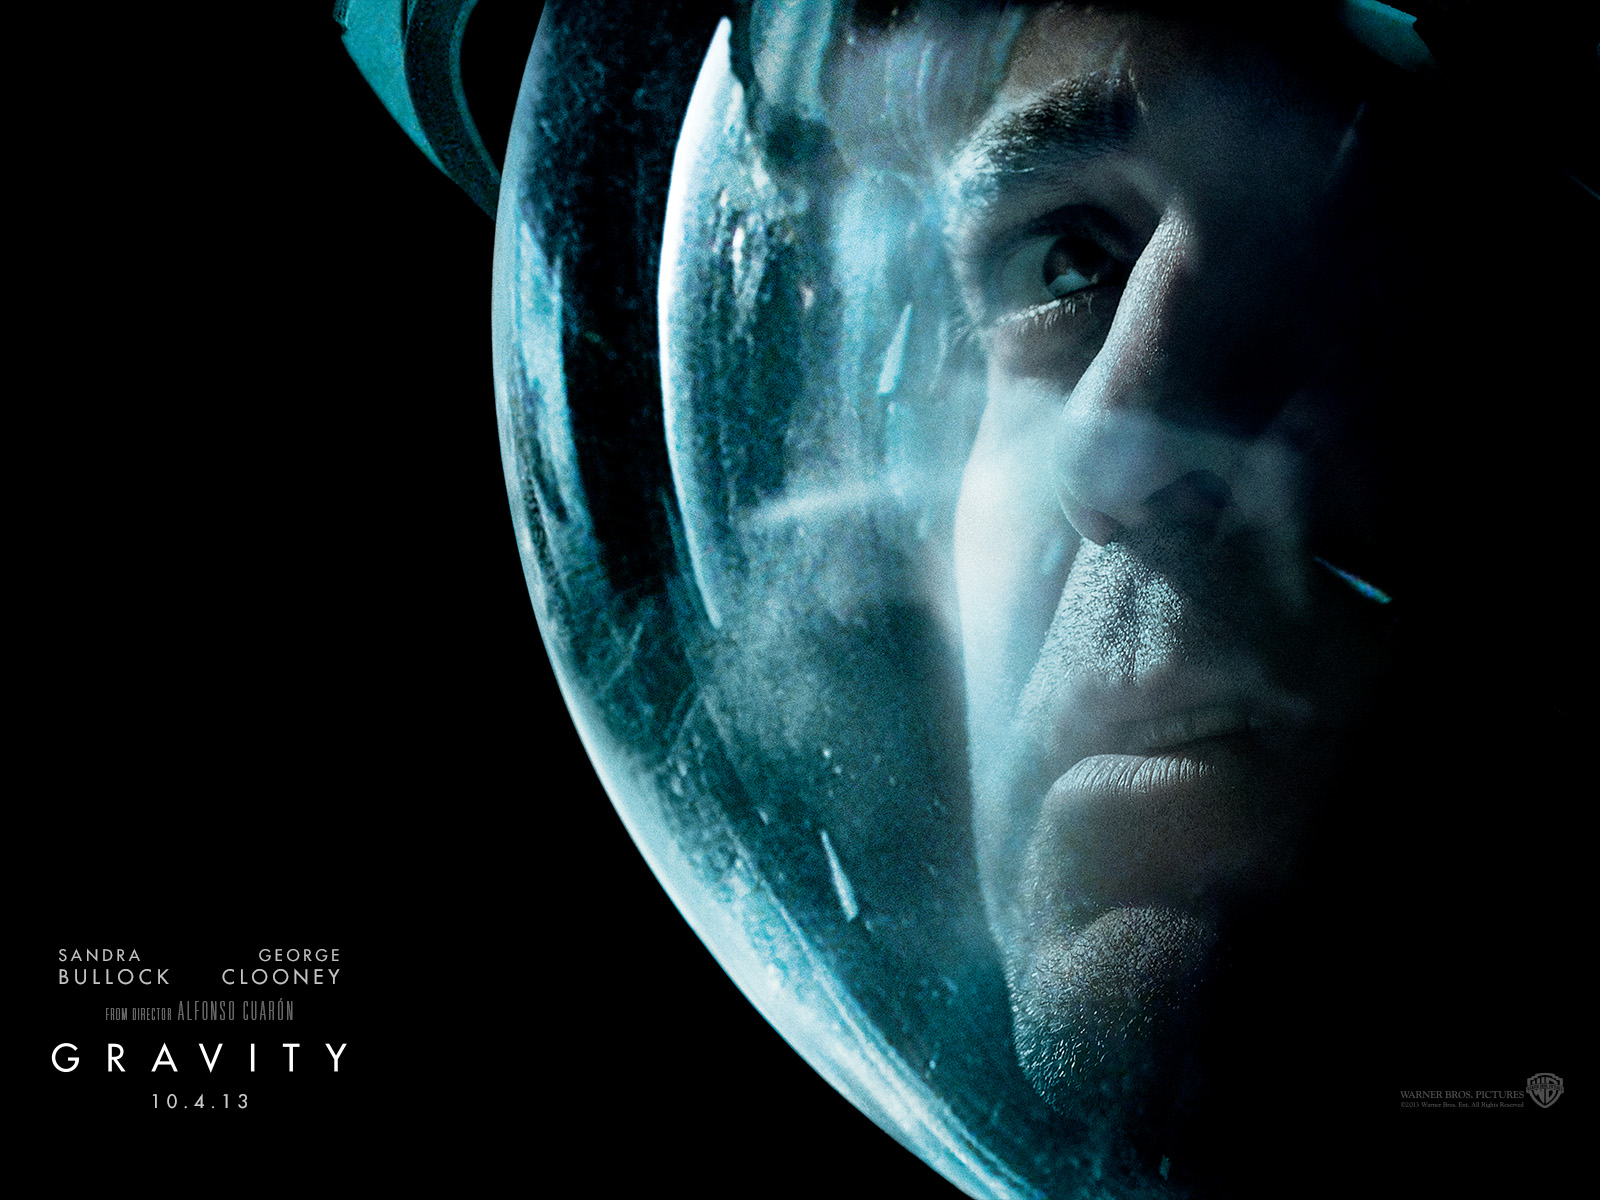 gravity (2013) images gravity - wallpaper hd wallpaper and